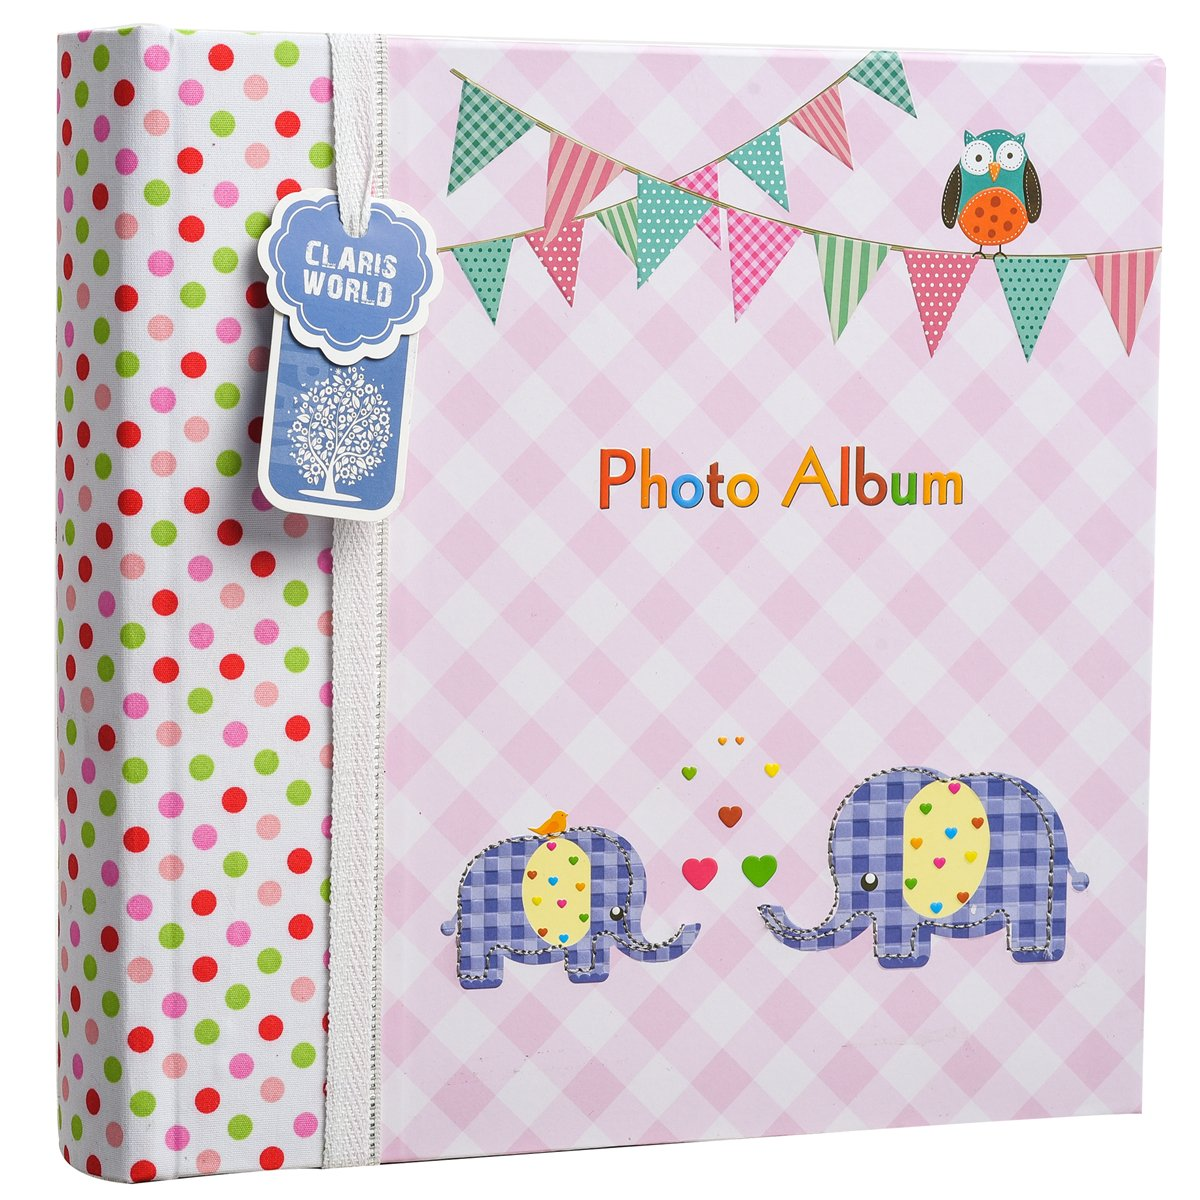 Apan 6x4'' Large Baby Boy or Girl Slip In Case Memo Photo Album For 200 Photos - Ideal Gift (Pink Elephant Kids) ARPAN BA-9857